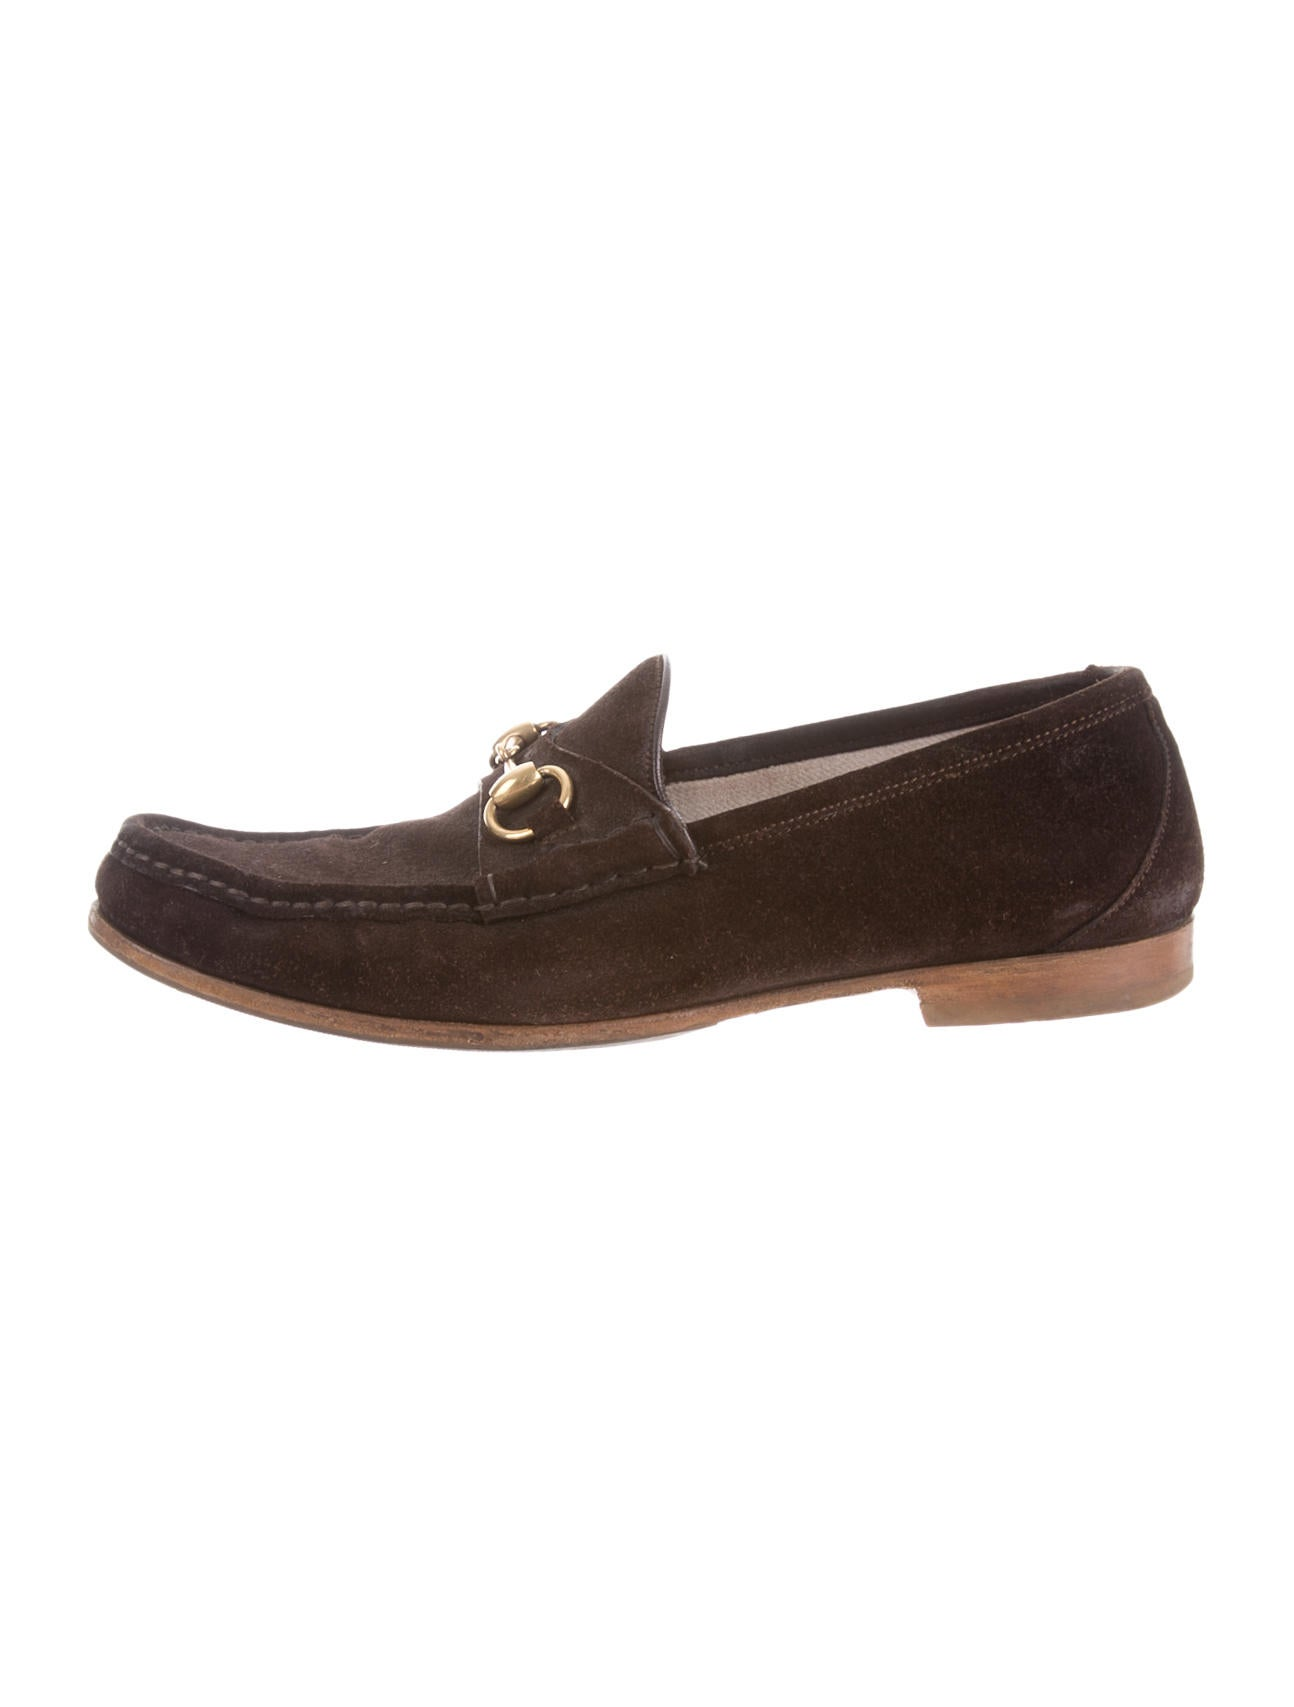 Gucci Loafers - Shoes - GUC53335 | The RealReal